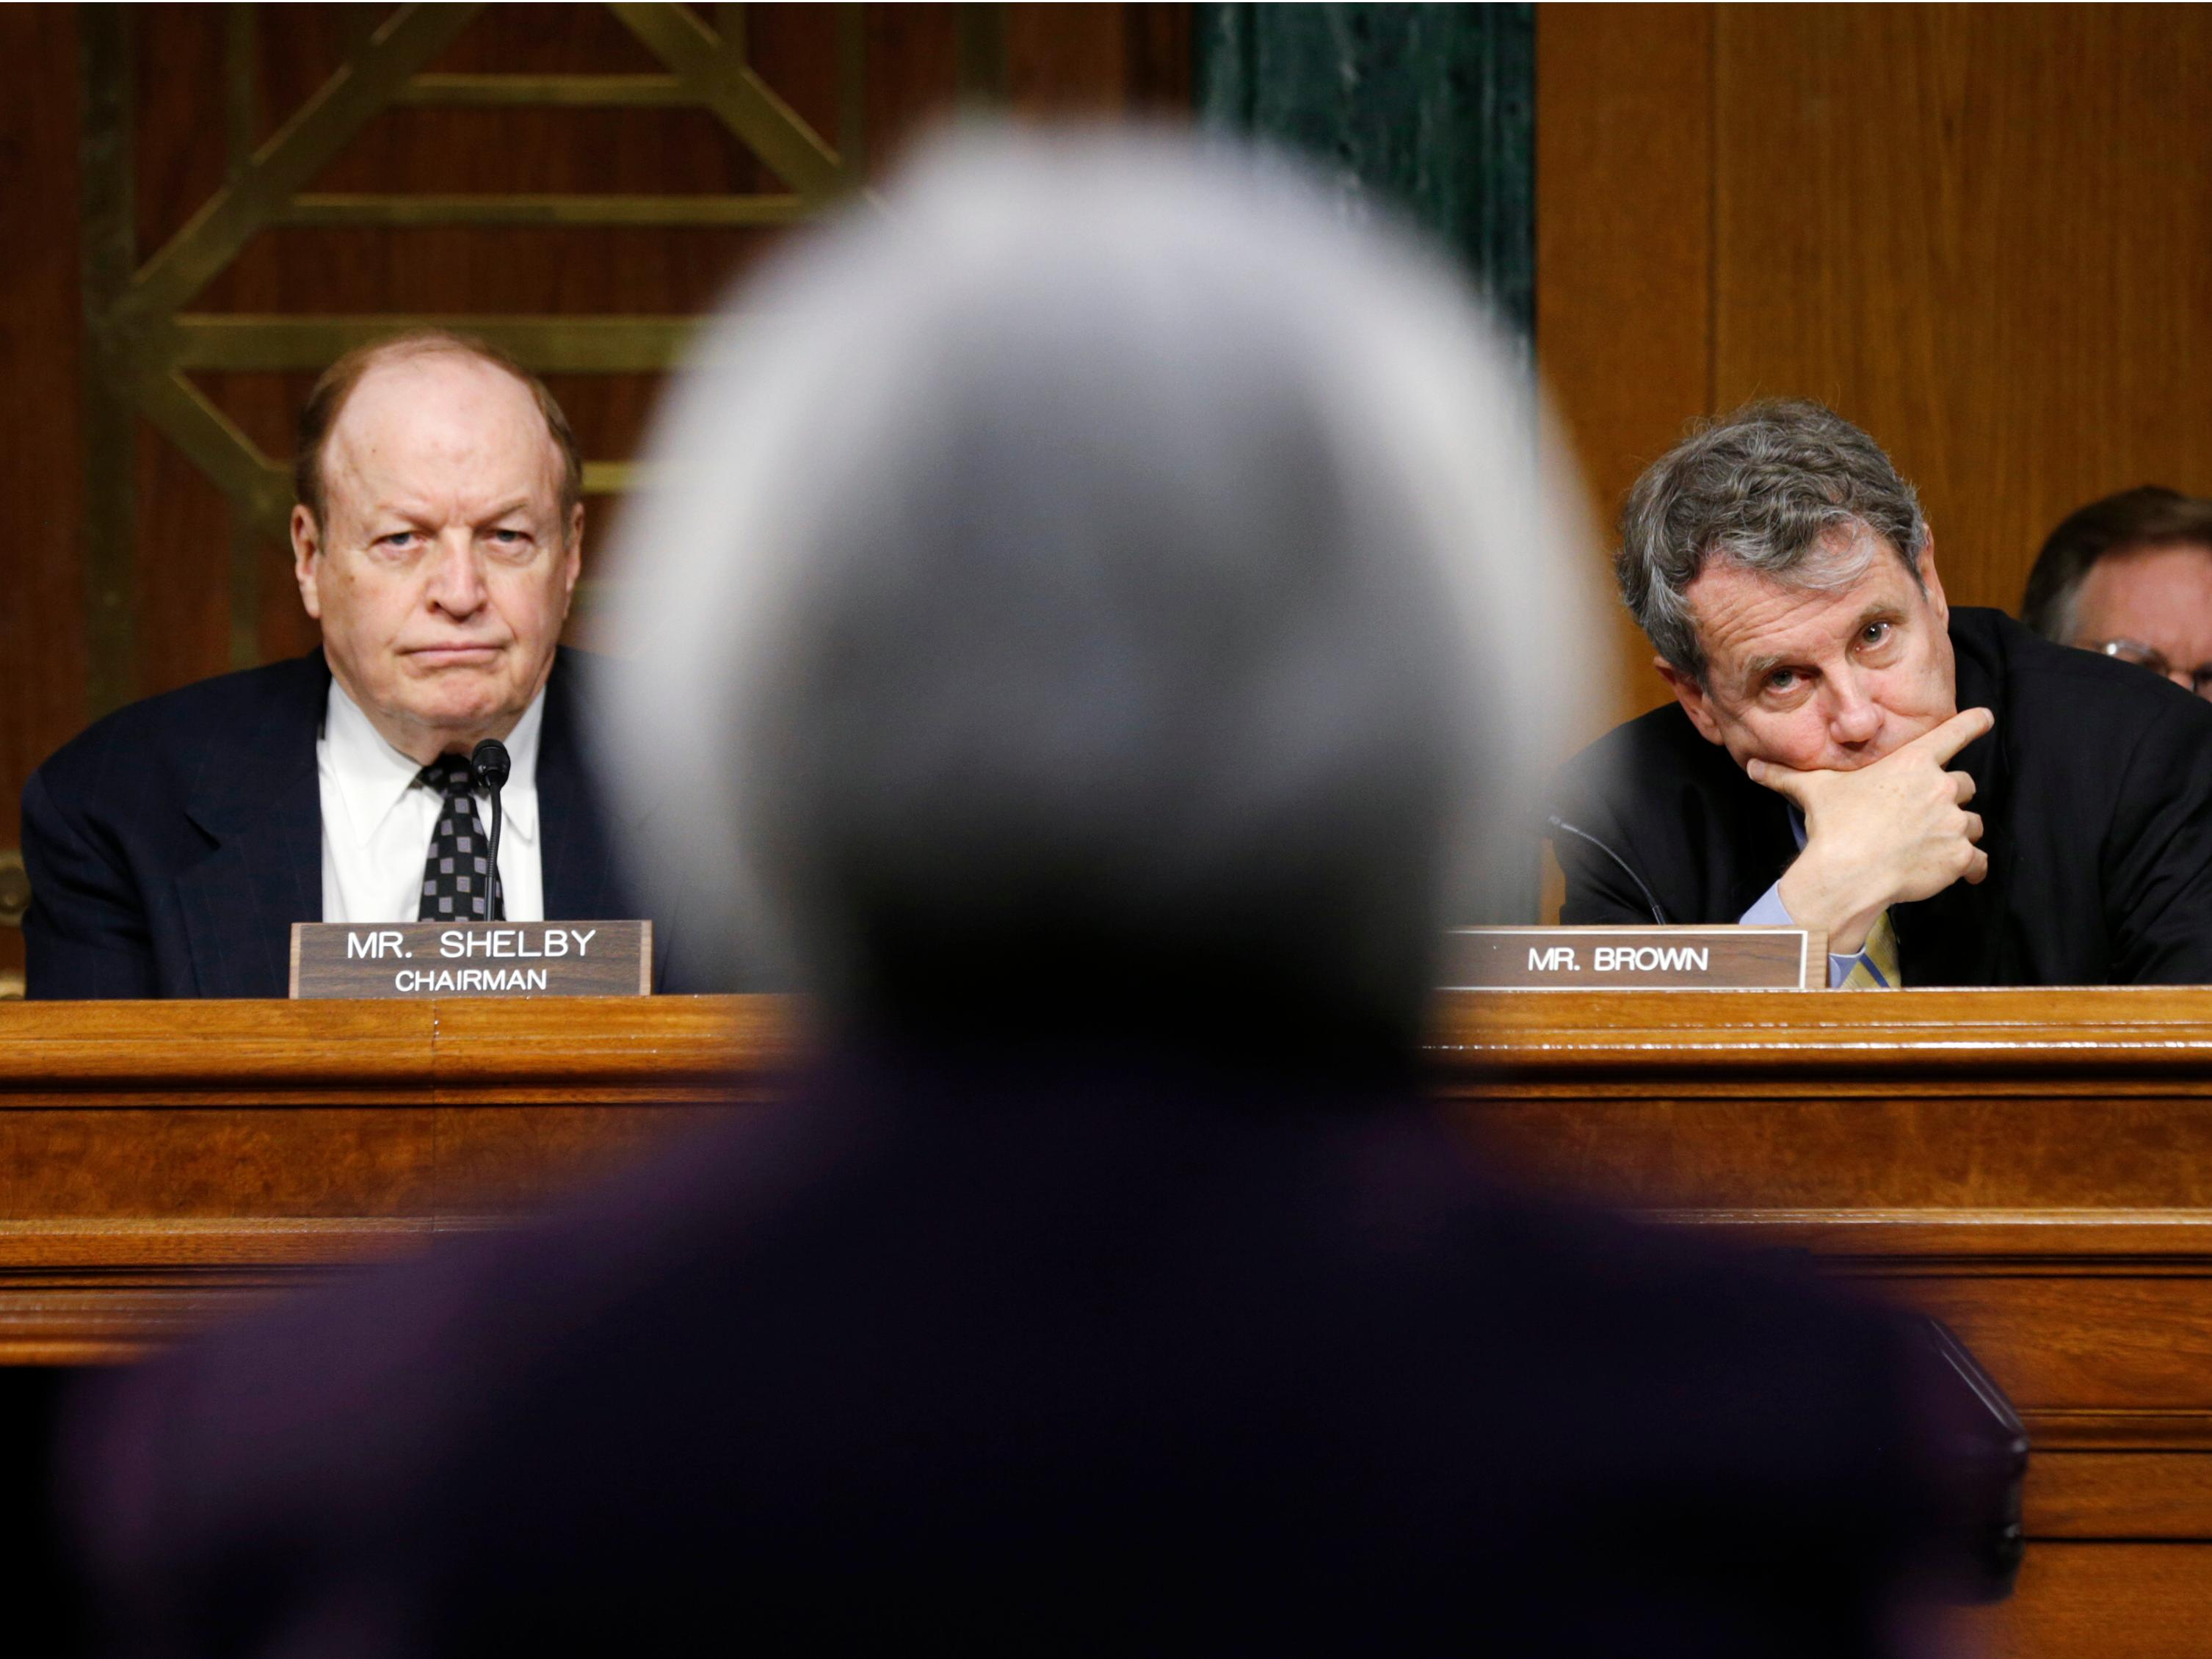 Here's what to expect when Janet Yellen faces Congress this week